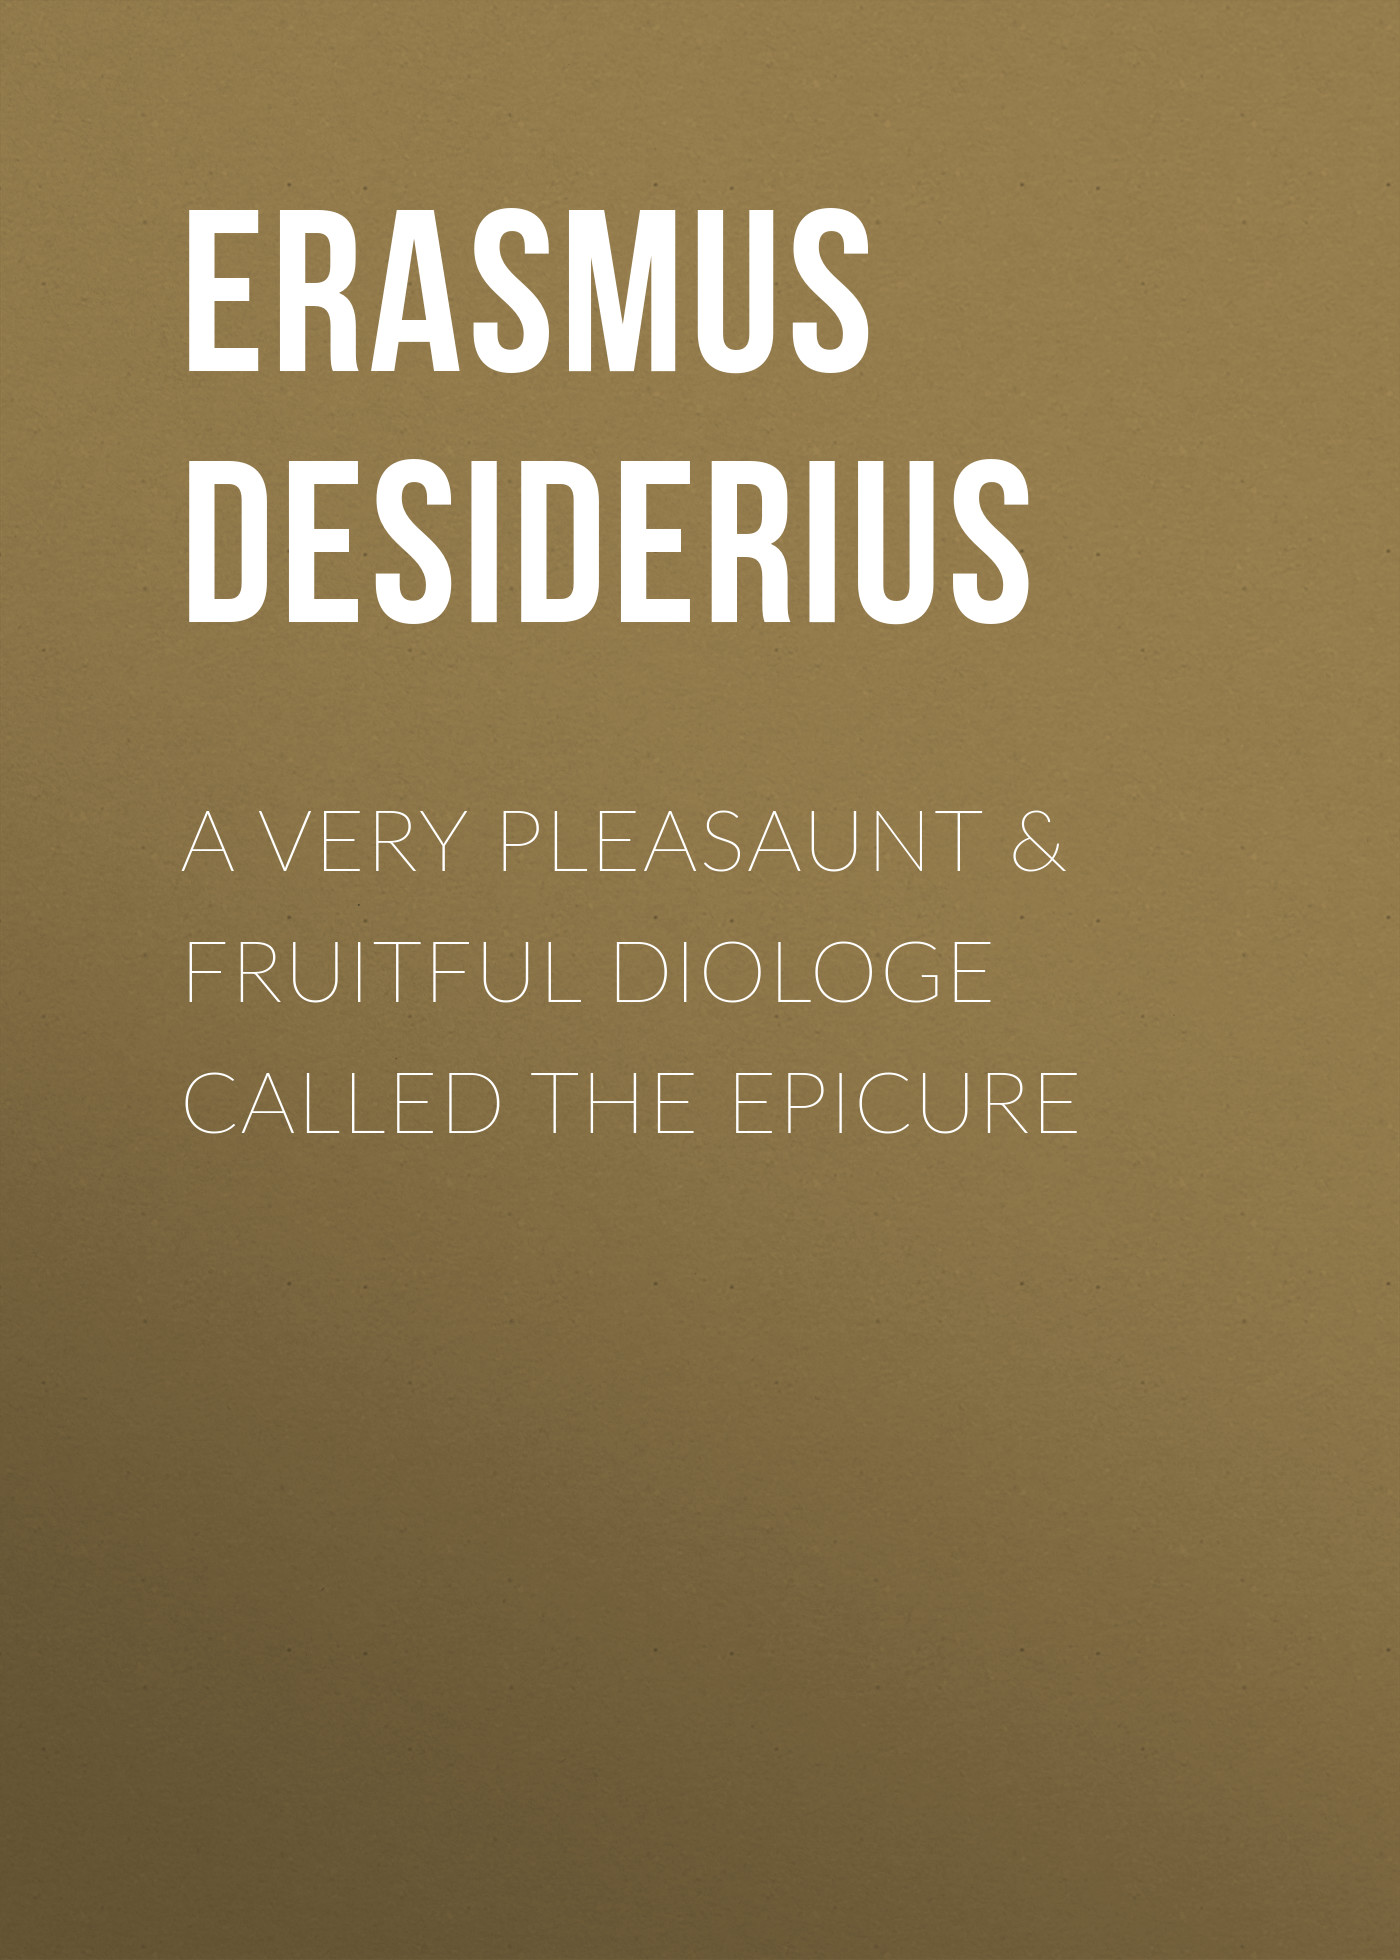 лучшая цена Erasmus Desiderius A Very Pleasaunt & Fruitful Diologe Called the Epicure